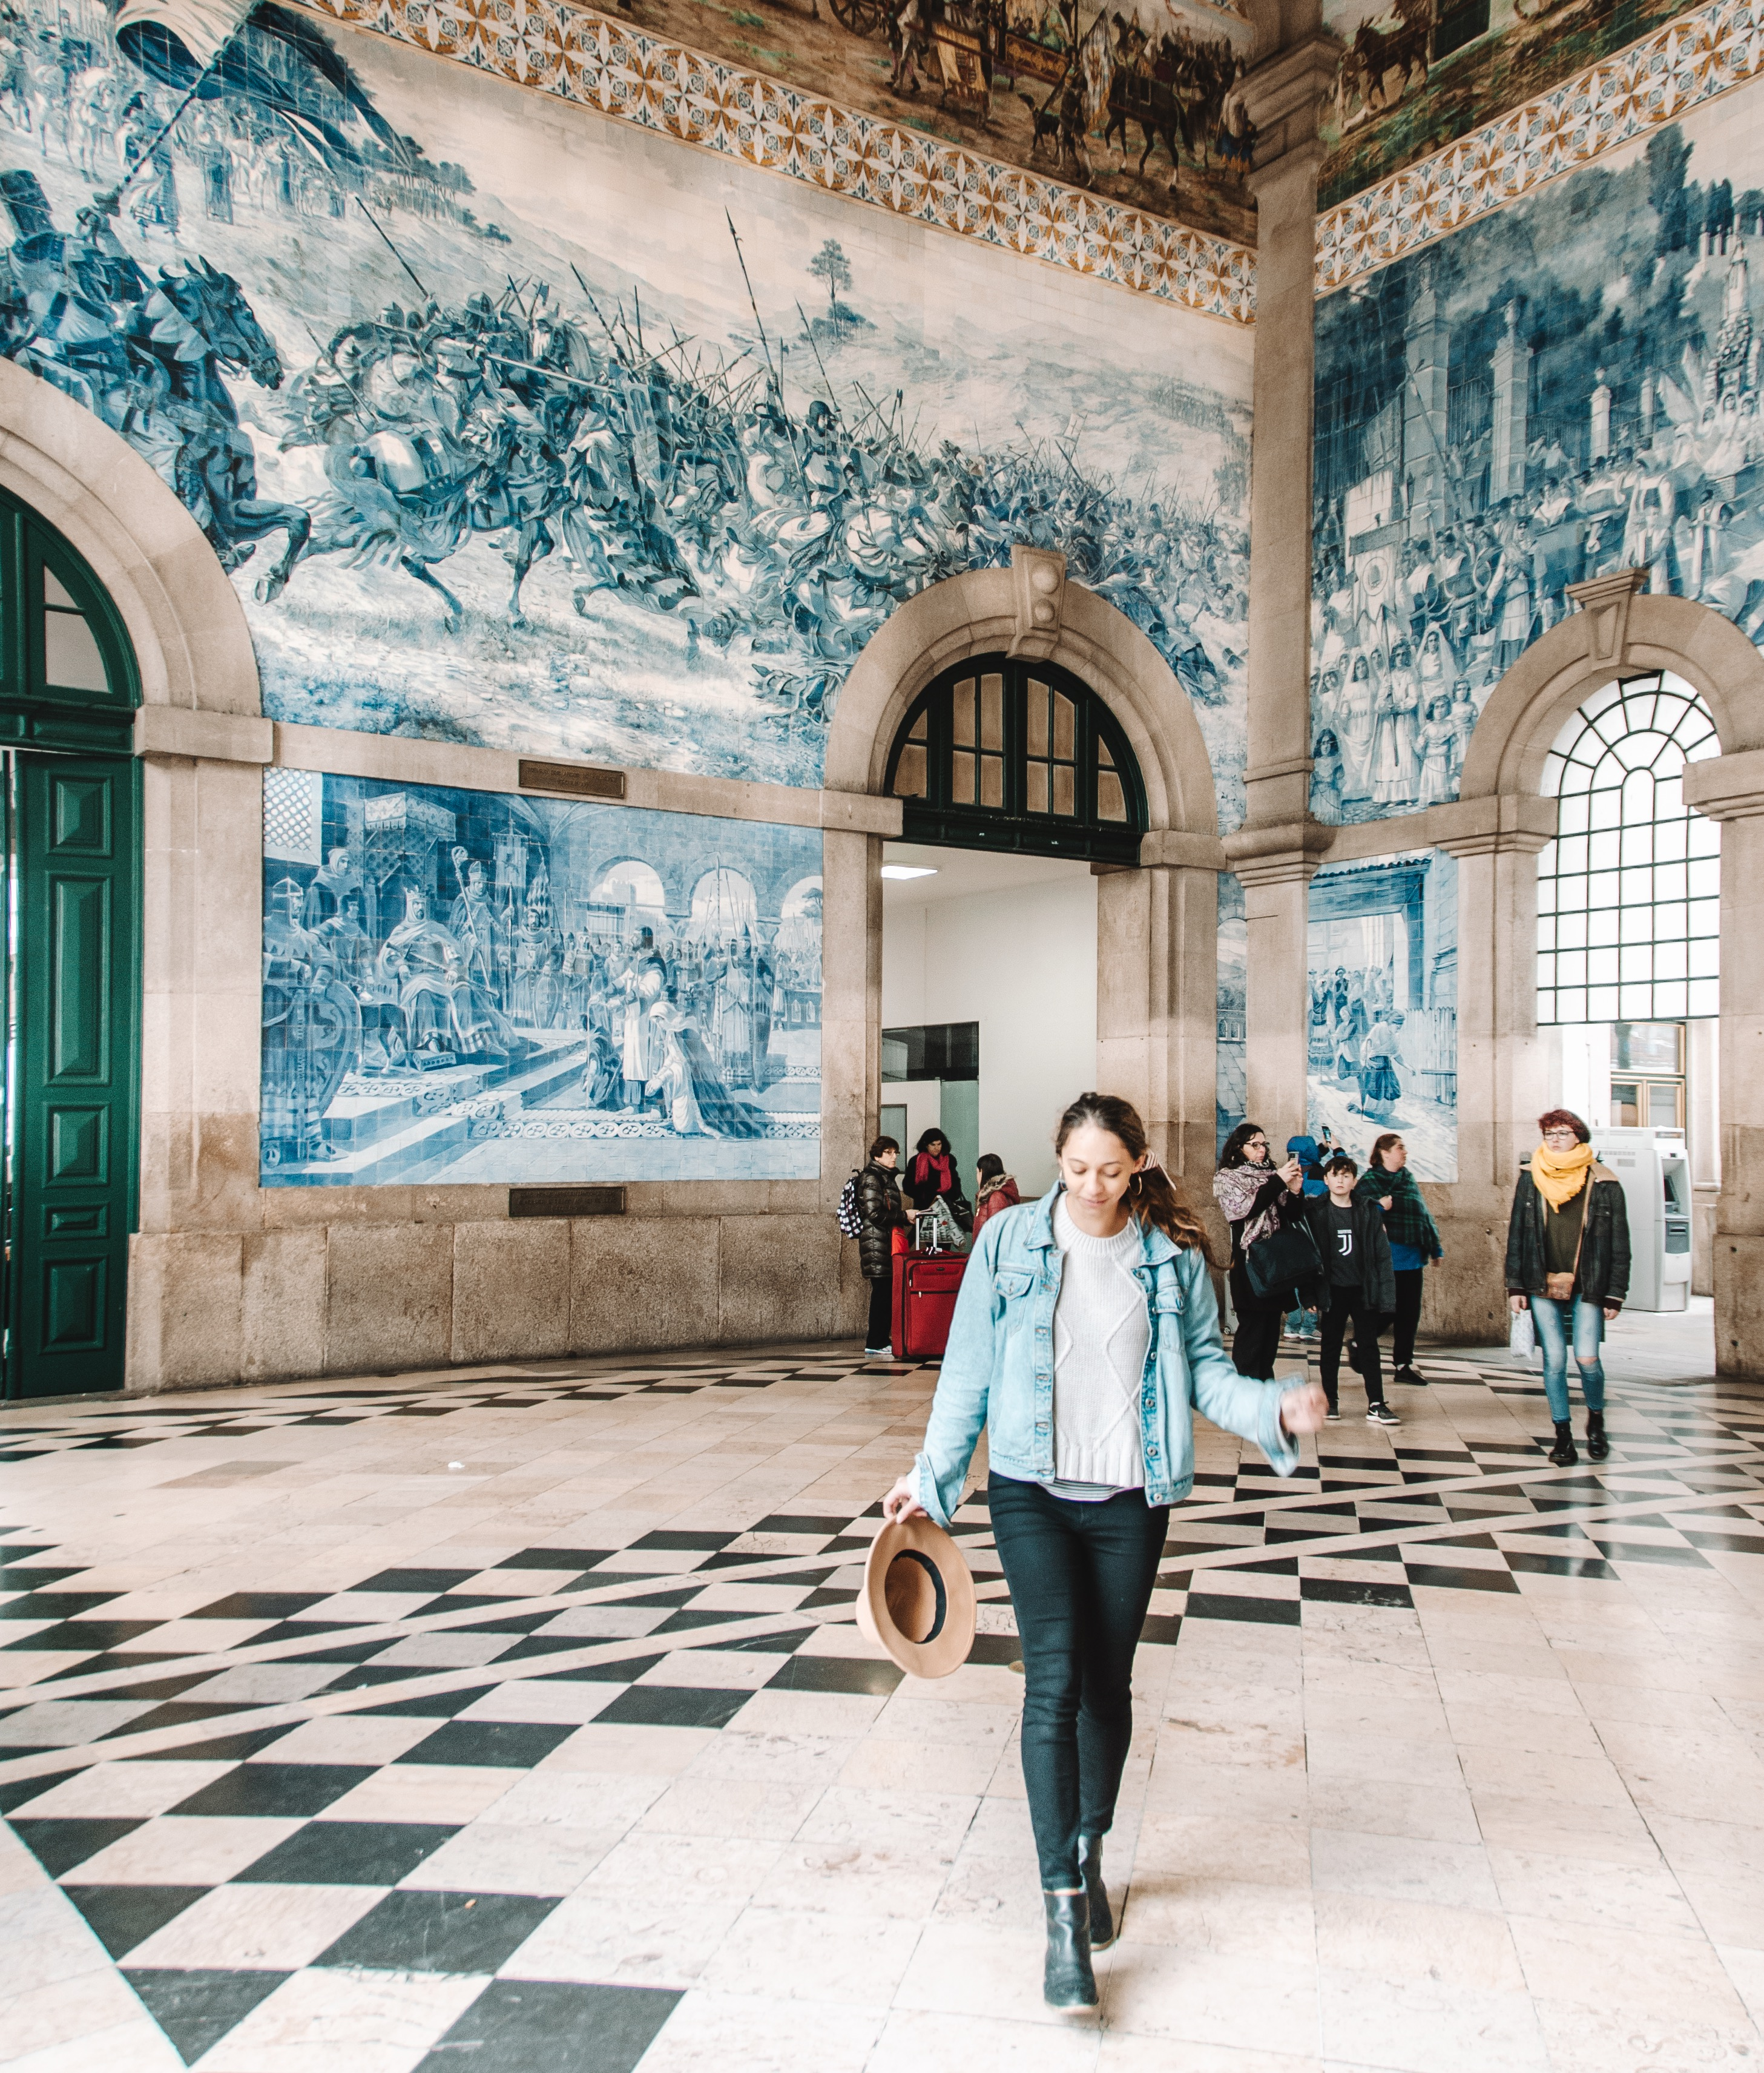 Best Things to do in Porto, Portugal - Visit Sao Bento Station